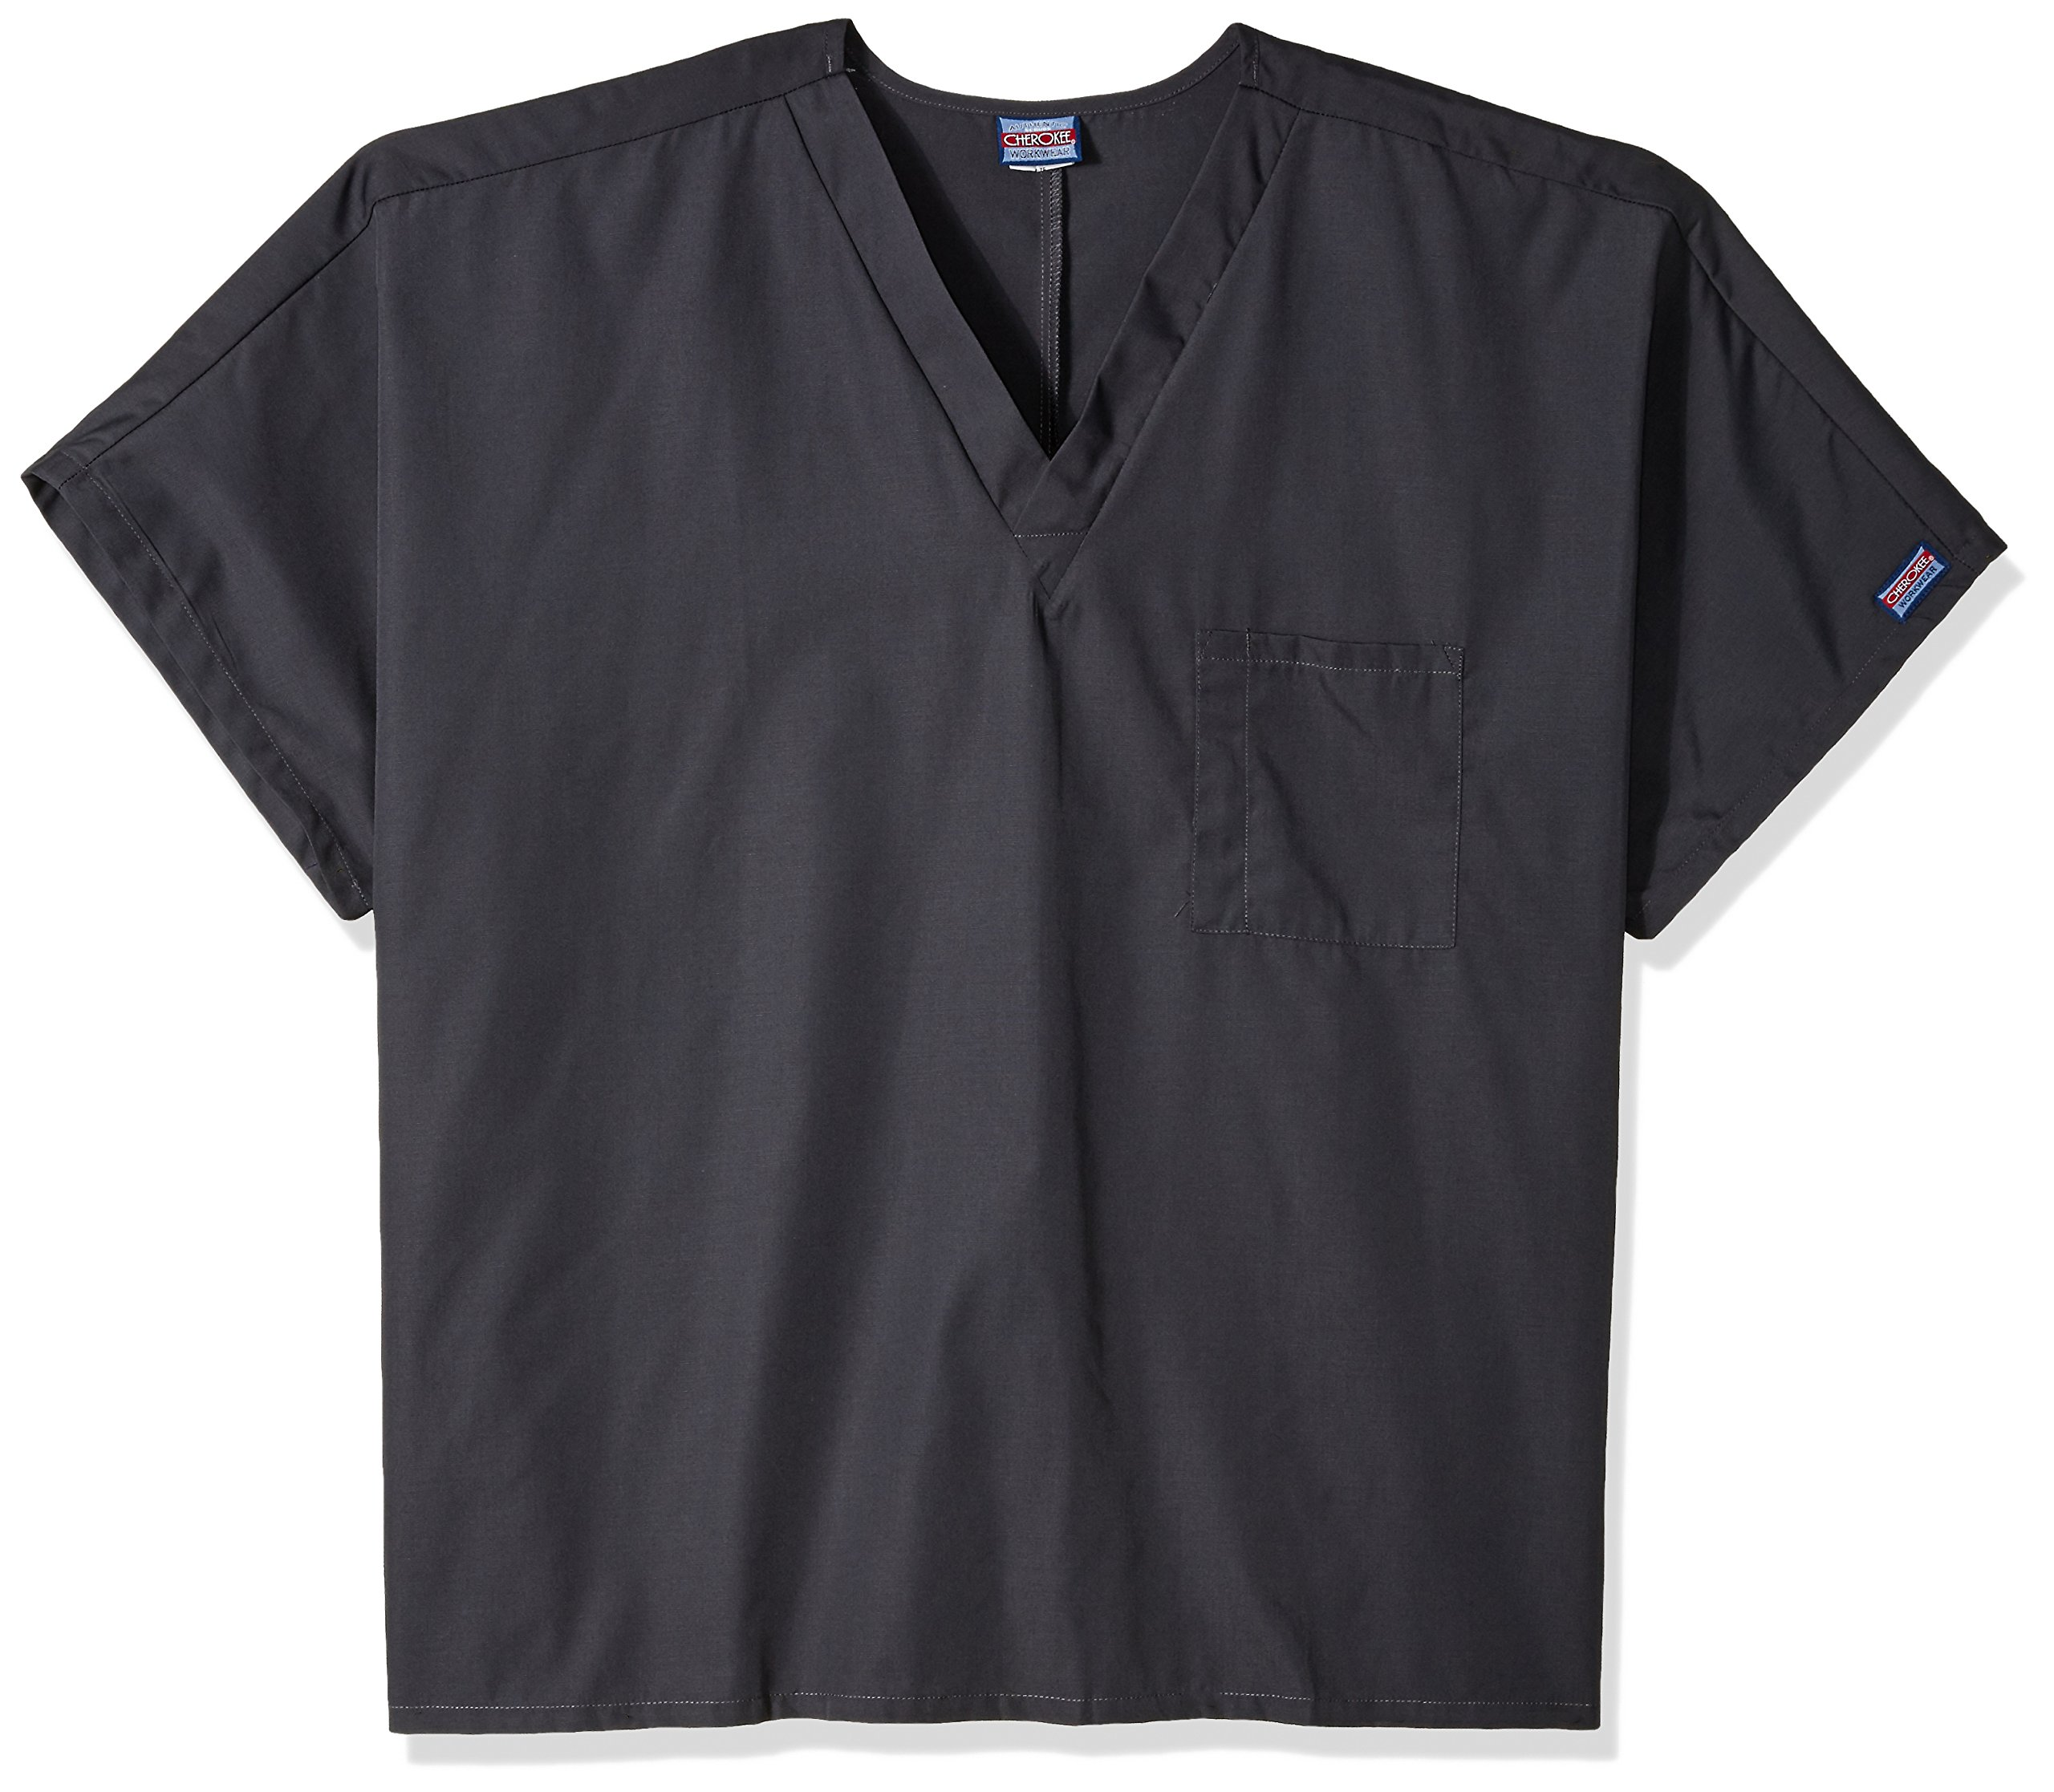 Cherokee Workwear Scrubs Unisex V-neck Tunic Top, Pewter, XX-Large